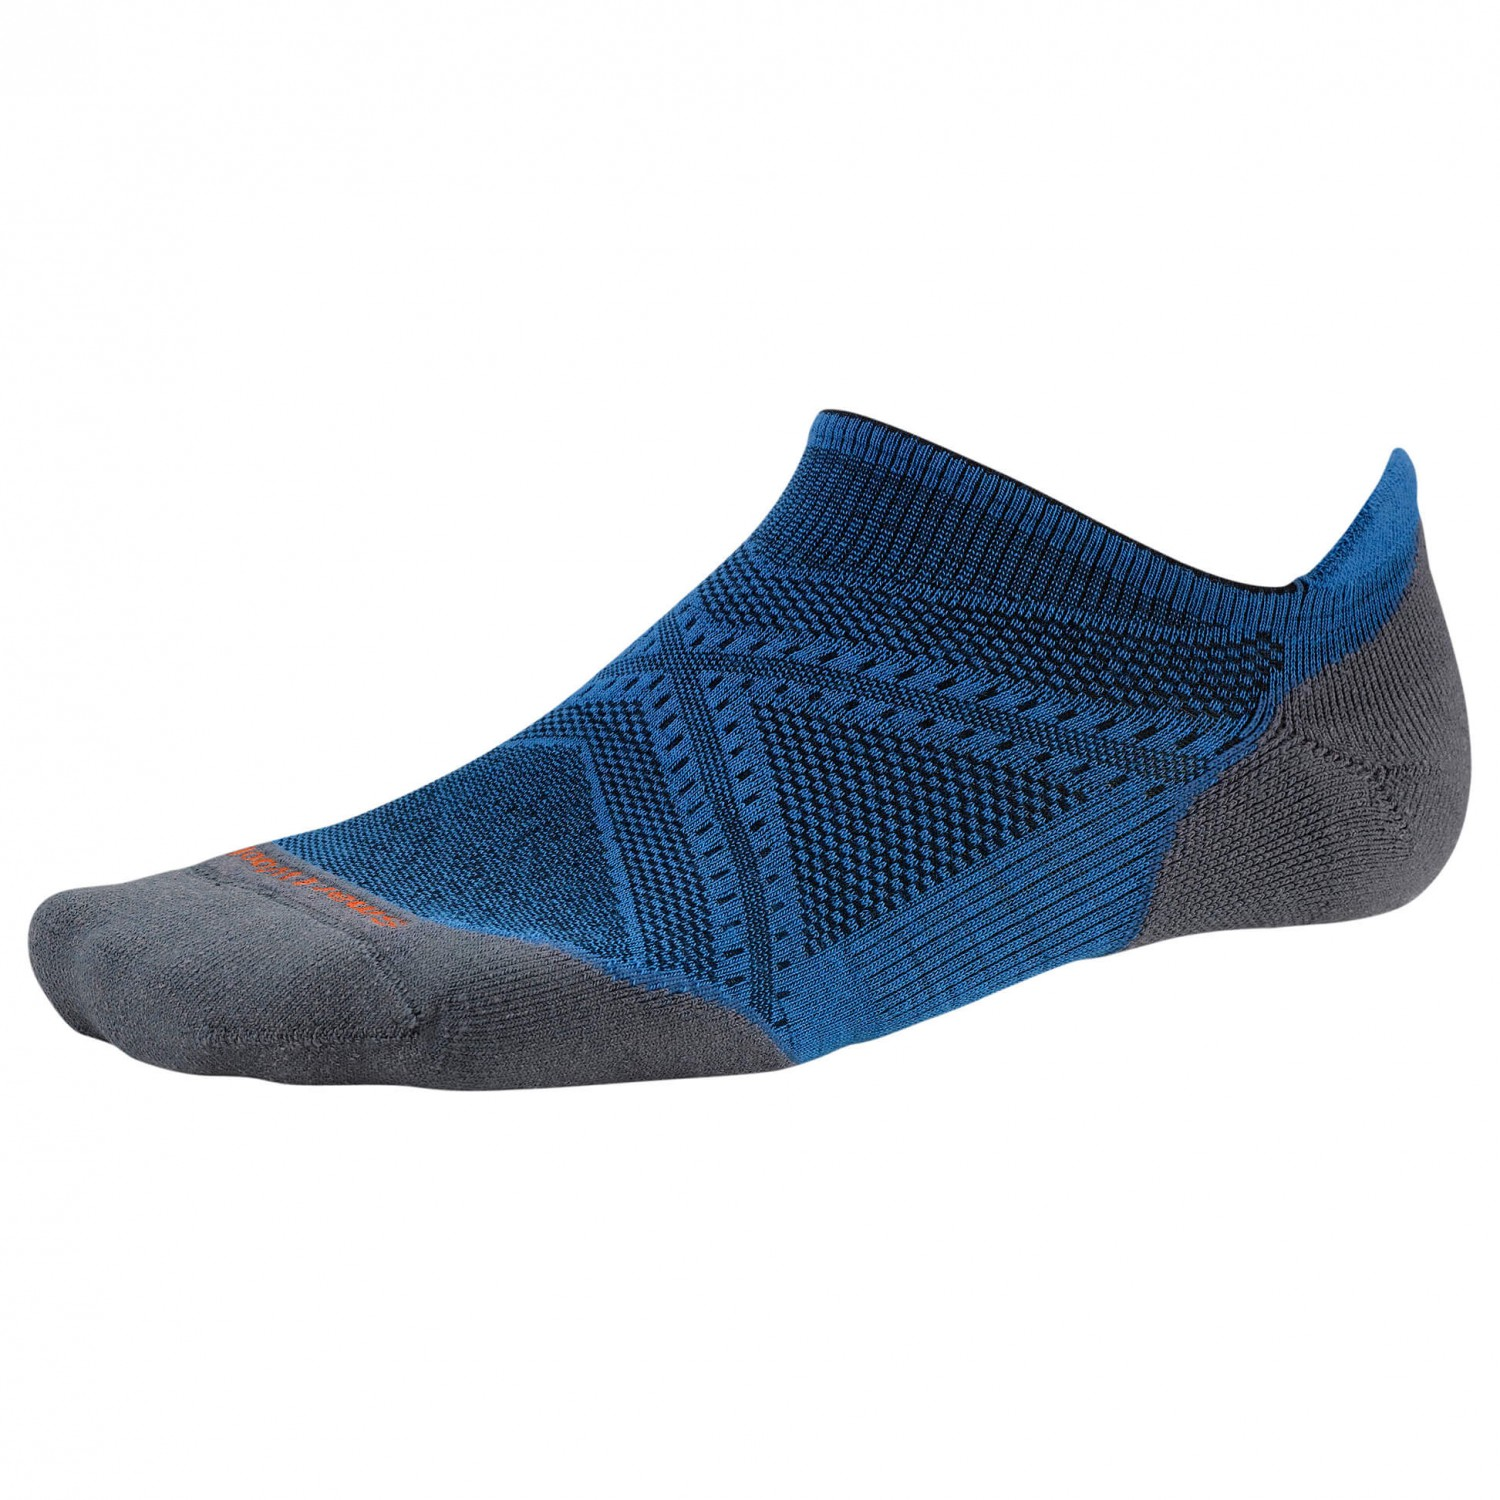 Smartwool Phd Run Light Elite Micro Running Socks Buy